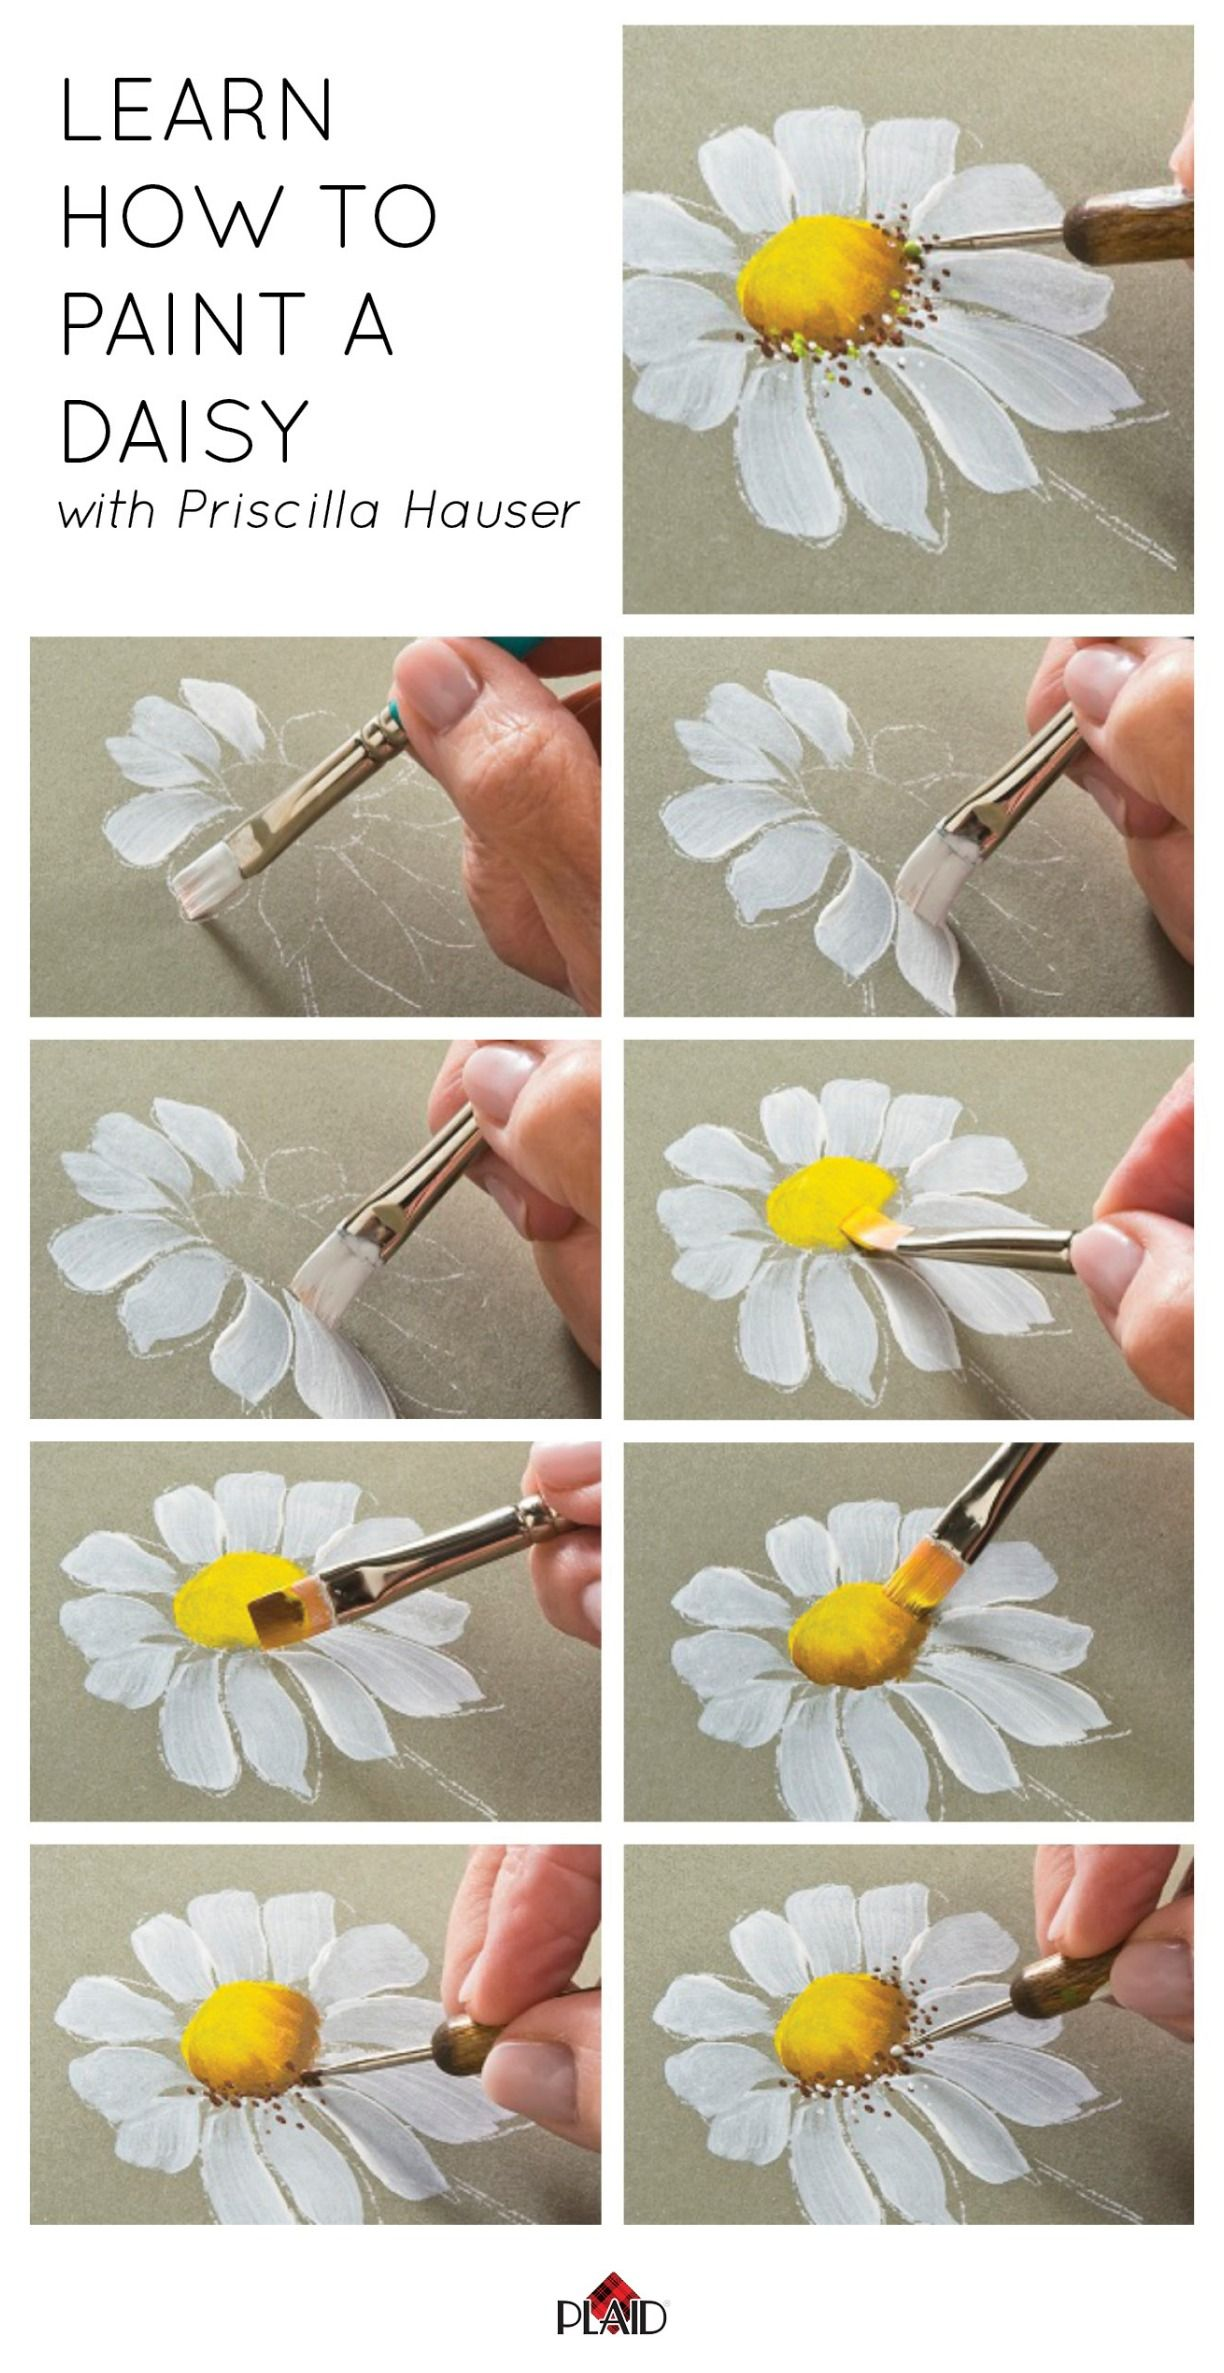 Learn how to paint a daisy with priscilla hauser super easy step by learn how to paint a daisy with priscilla hauser super easy step by steps plaidcrafts diy izmirmasajfo